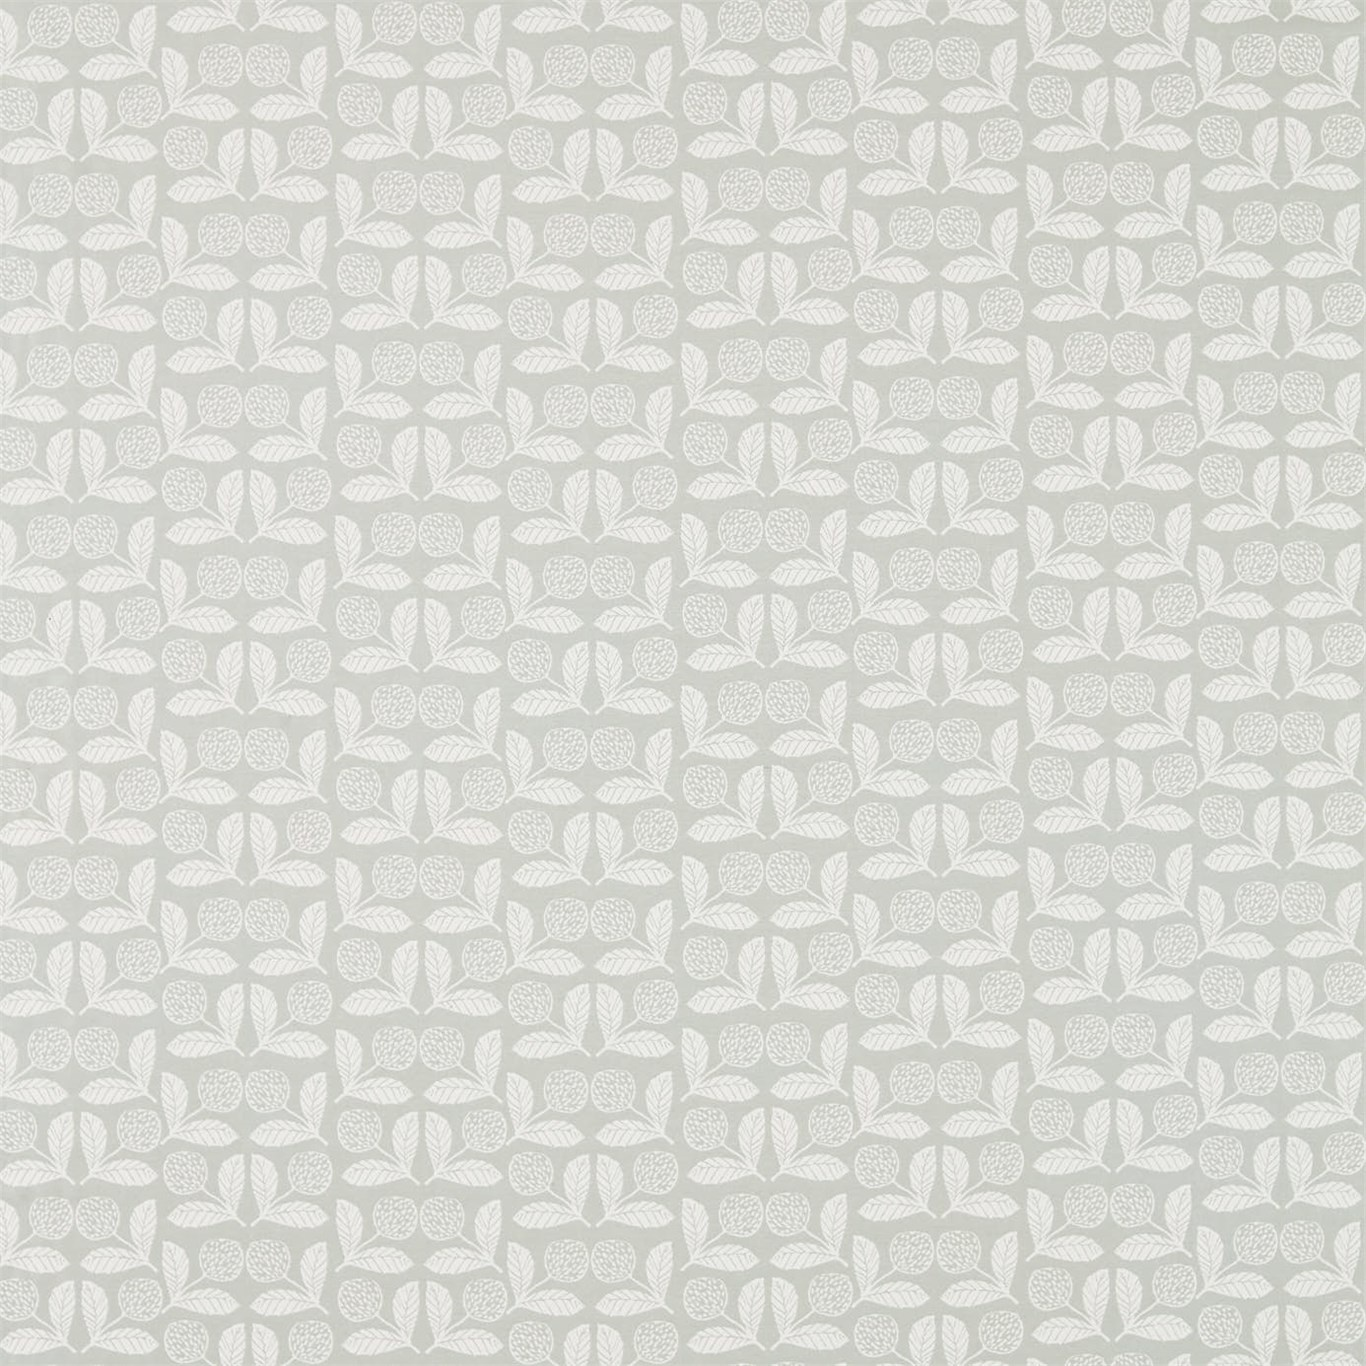 Image of Sanderson Home Seed Stitch Mineral Curtain Fabric 235869